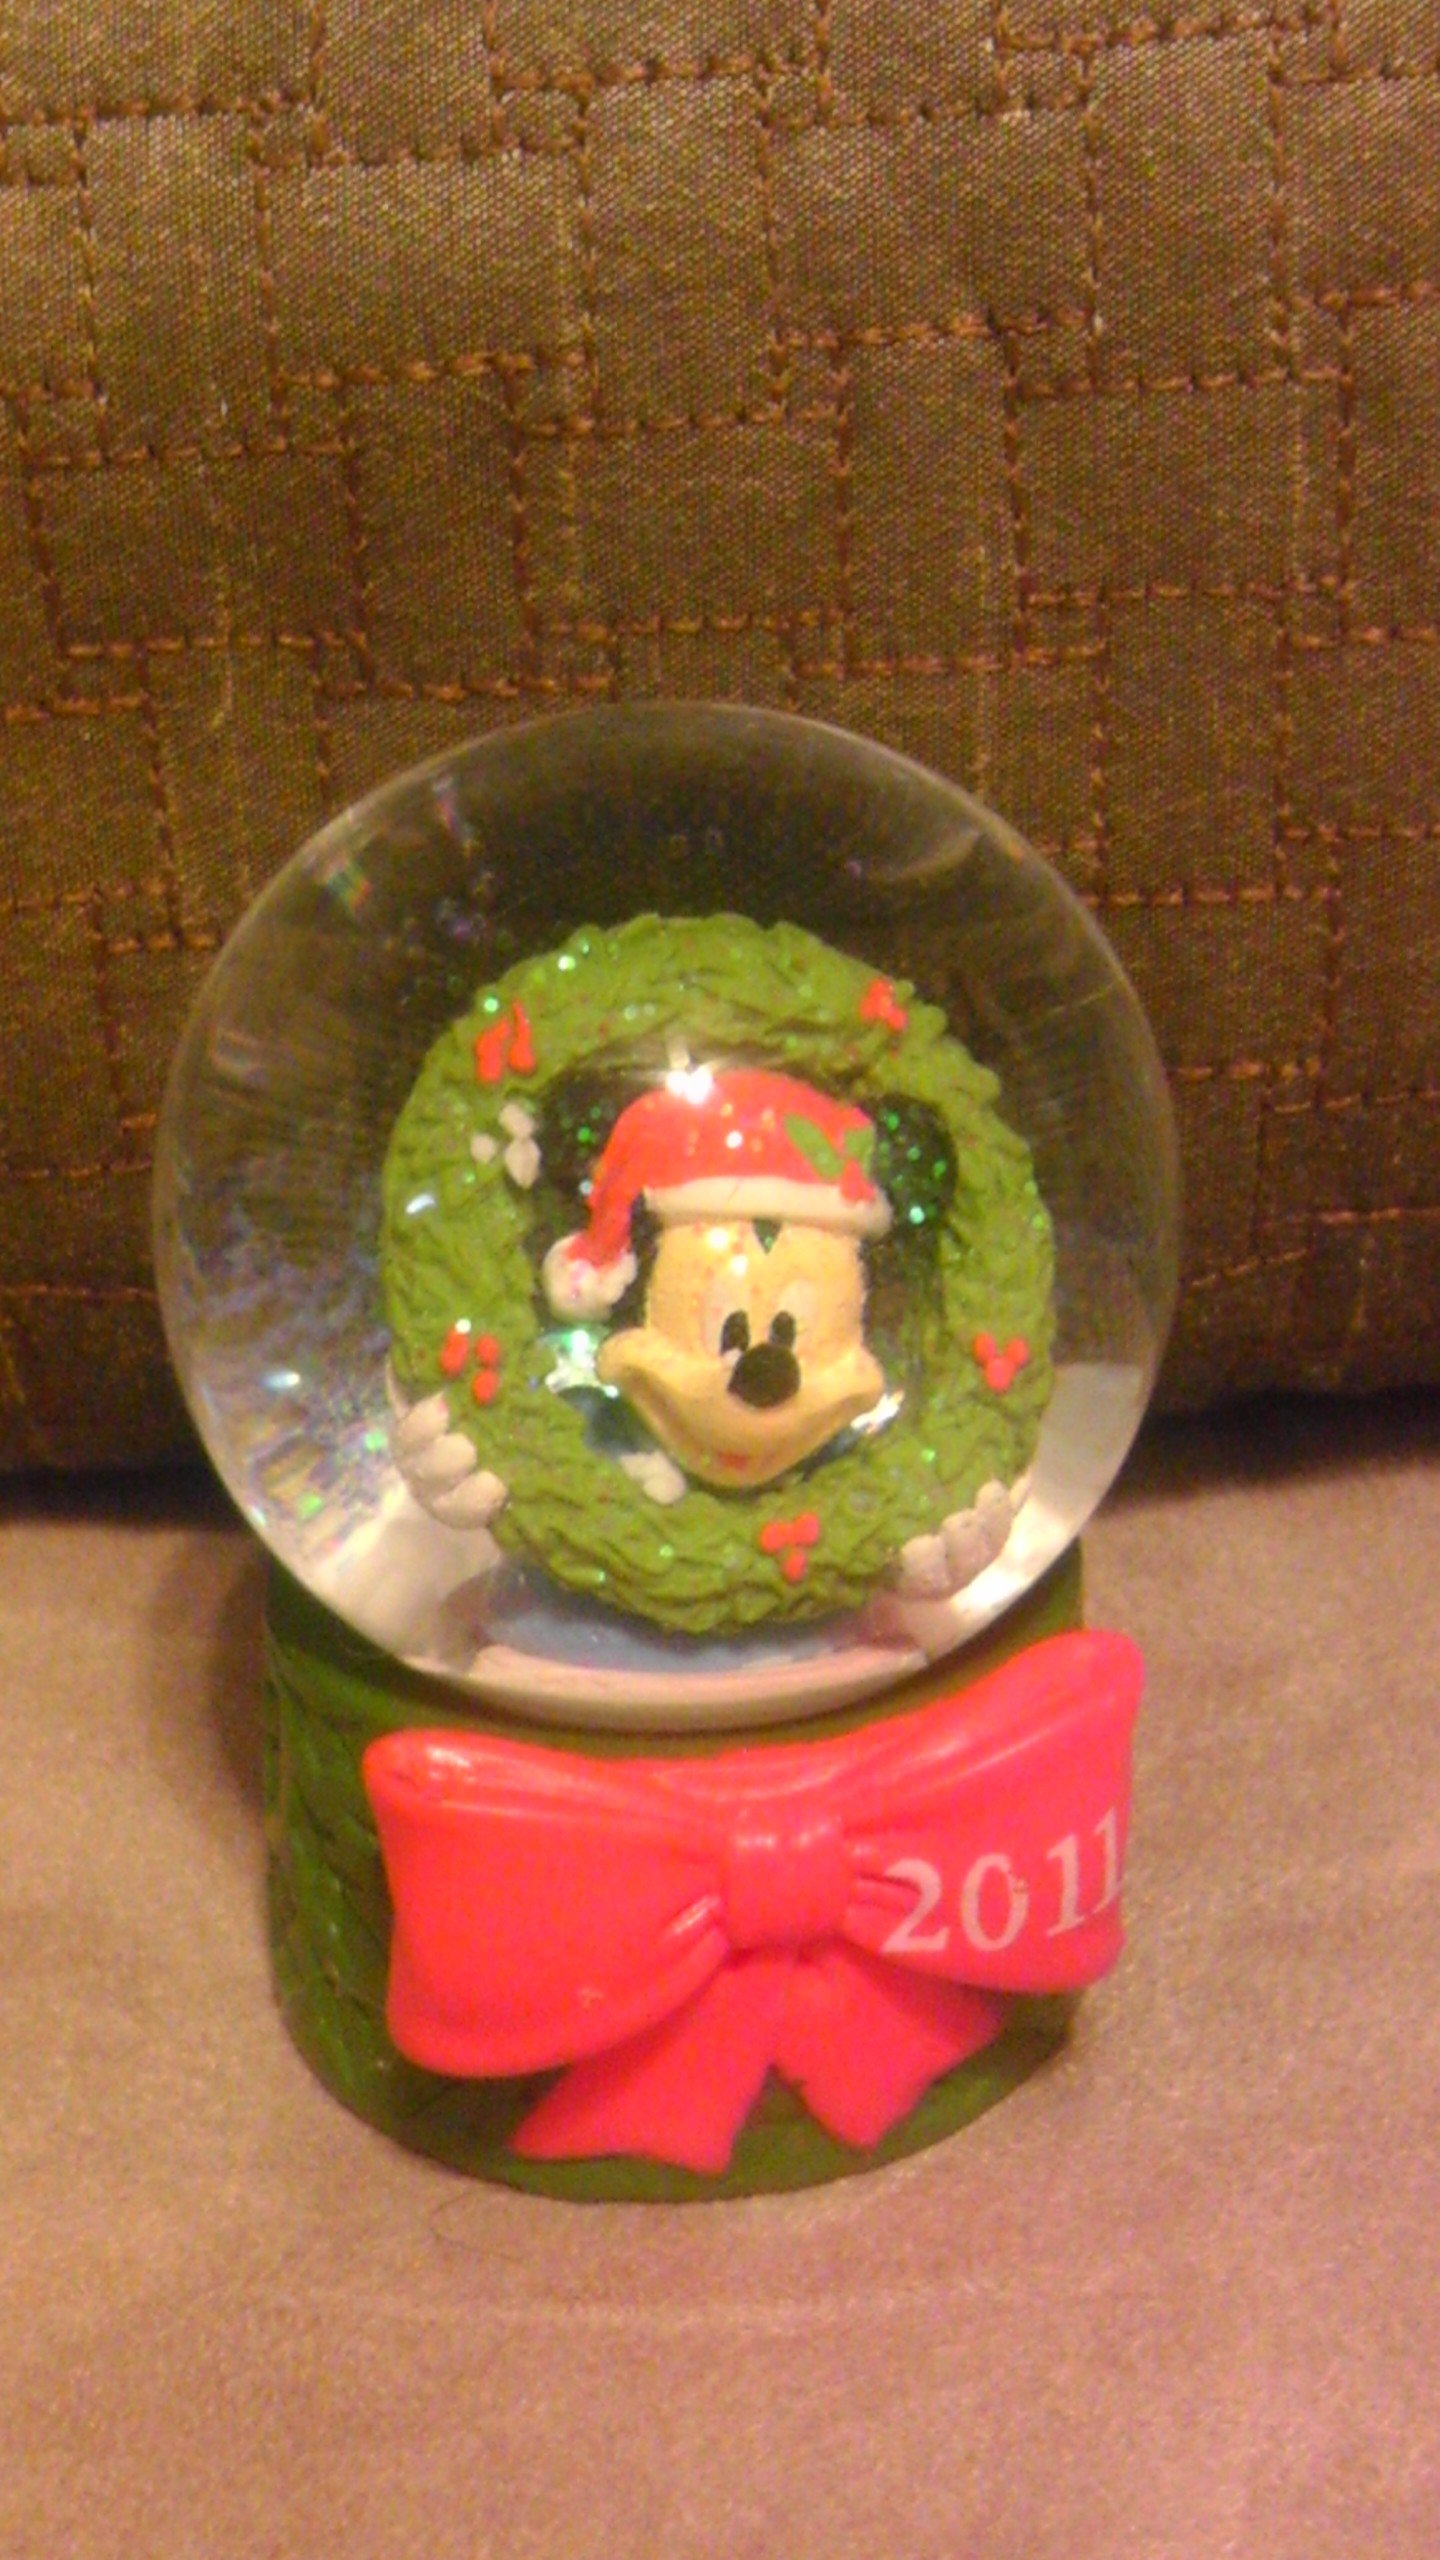 Disney Mickey Mouse 2011 Christmas Snowglobe from JC Penney